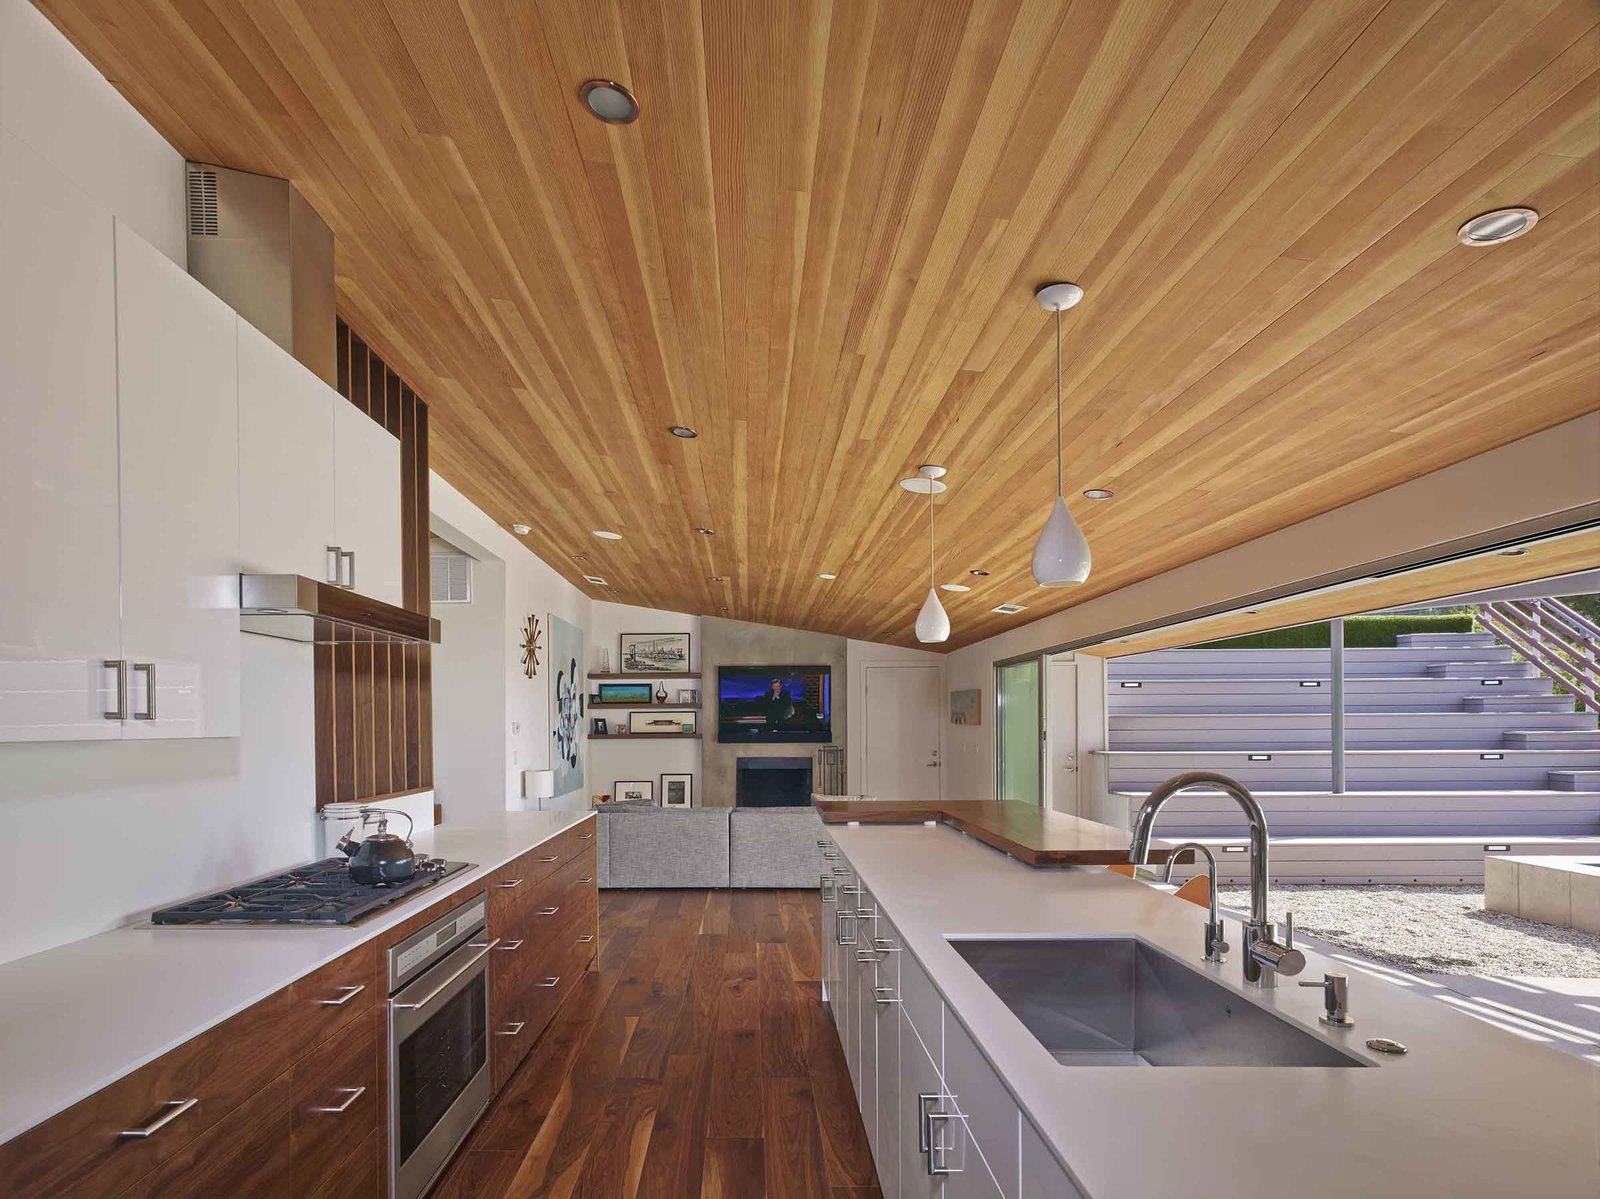 Kitchen and Medium Hardwood Floor  Photo 1 of 6 in A Mid-Century Modern Makeover in Los Angeles